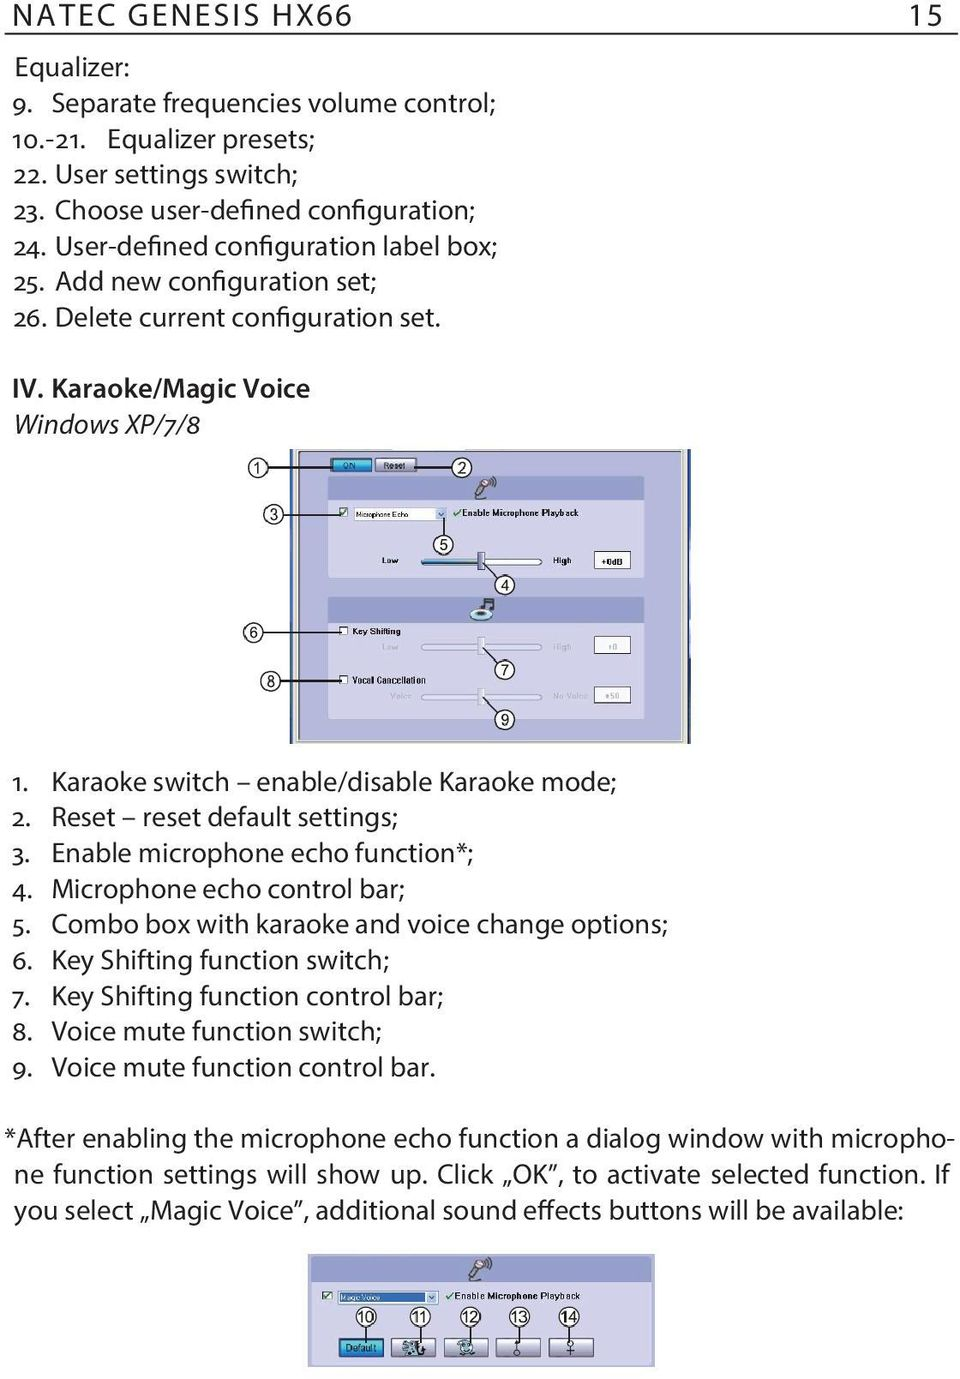 Reset reset default settings; 3. Enable microphone echo function*; 4. Microphone echo control bar; 5. Combo box with karaoke and voice change options; 6. Key Shifting function switch; 7.